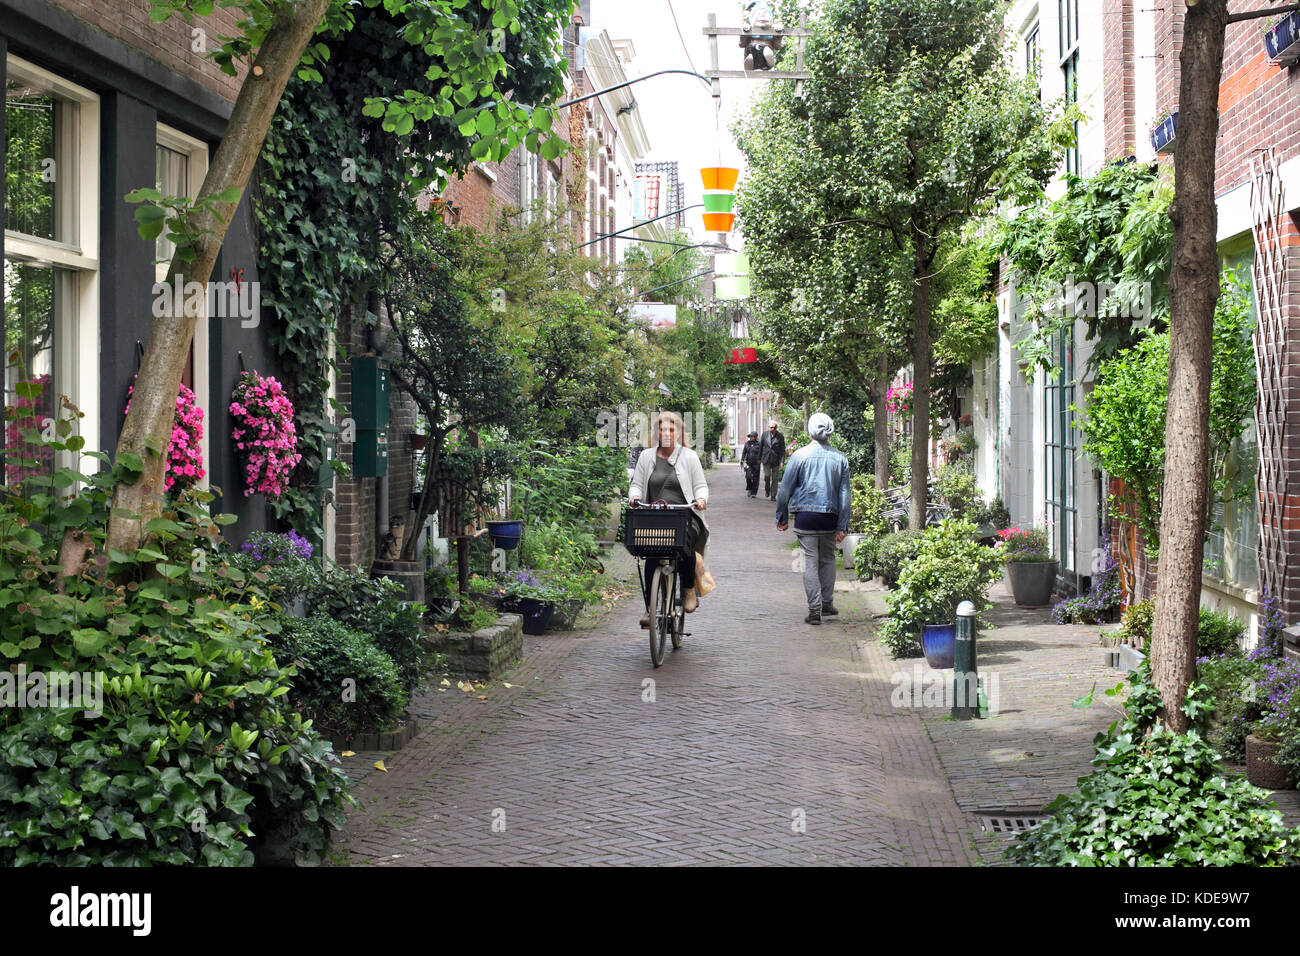 Pedestrians and a cyclist share a narrow traffic-free street in Haarlem city centre, North Holland. - Stock Image